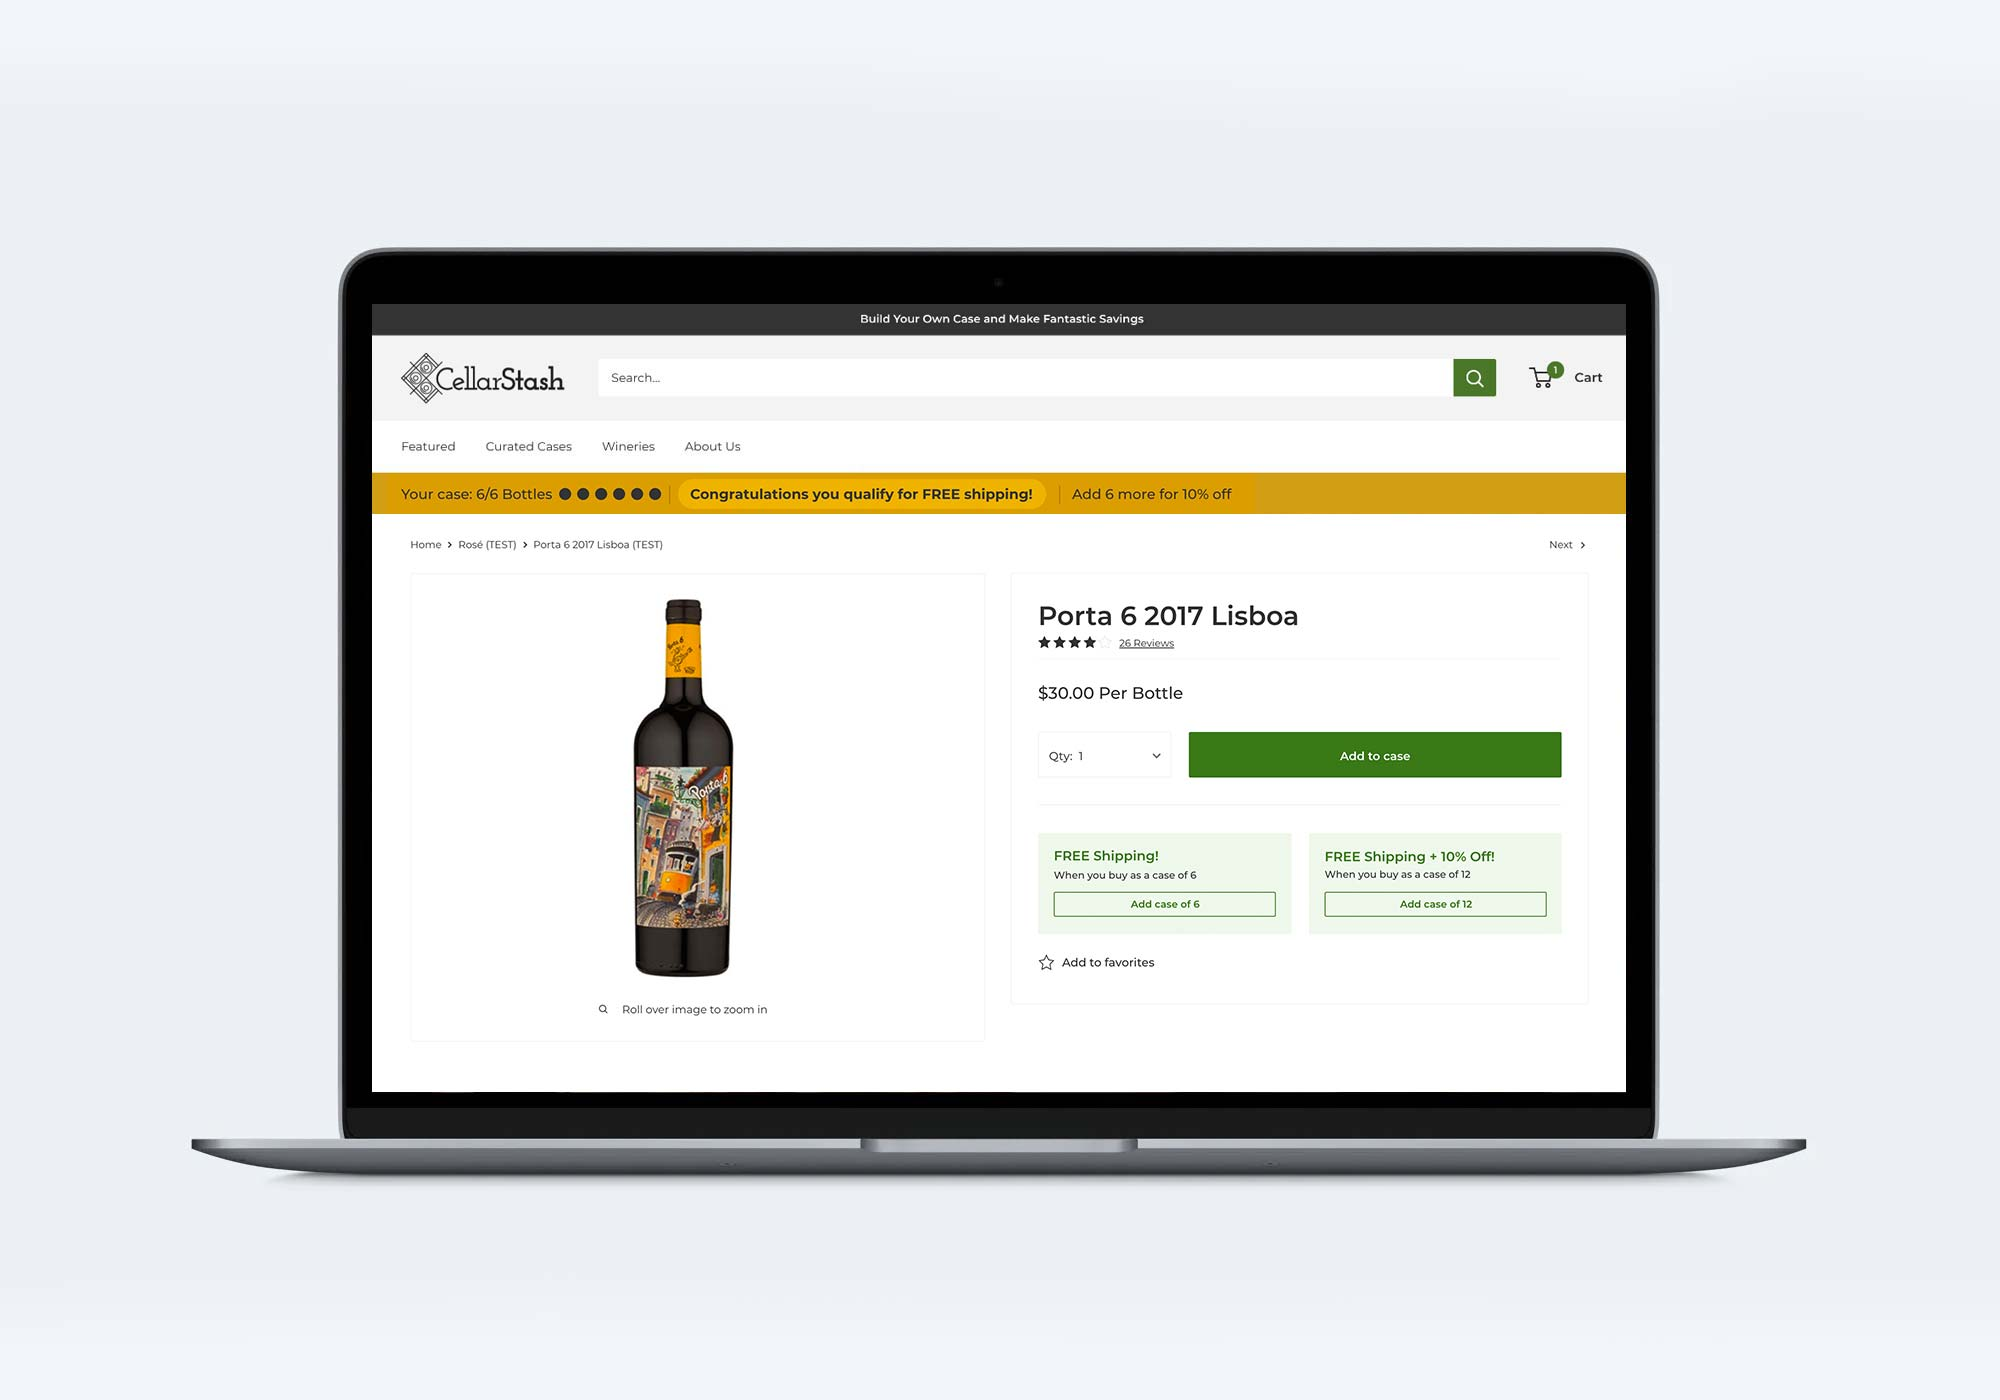 Users were given the opportunity to build cases of the same wine with 1 simple click!